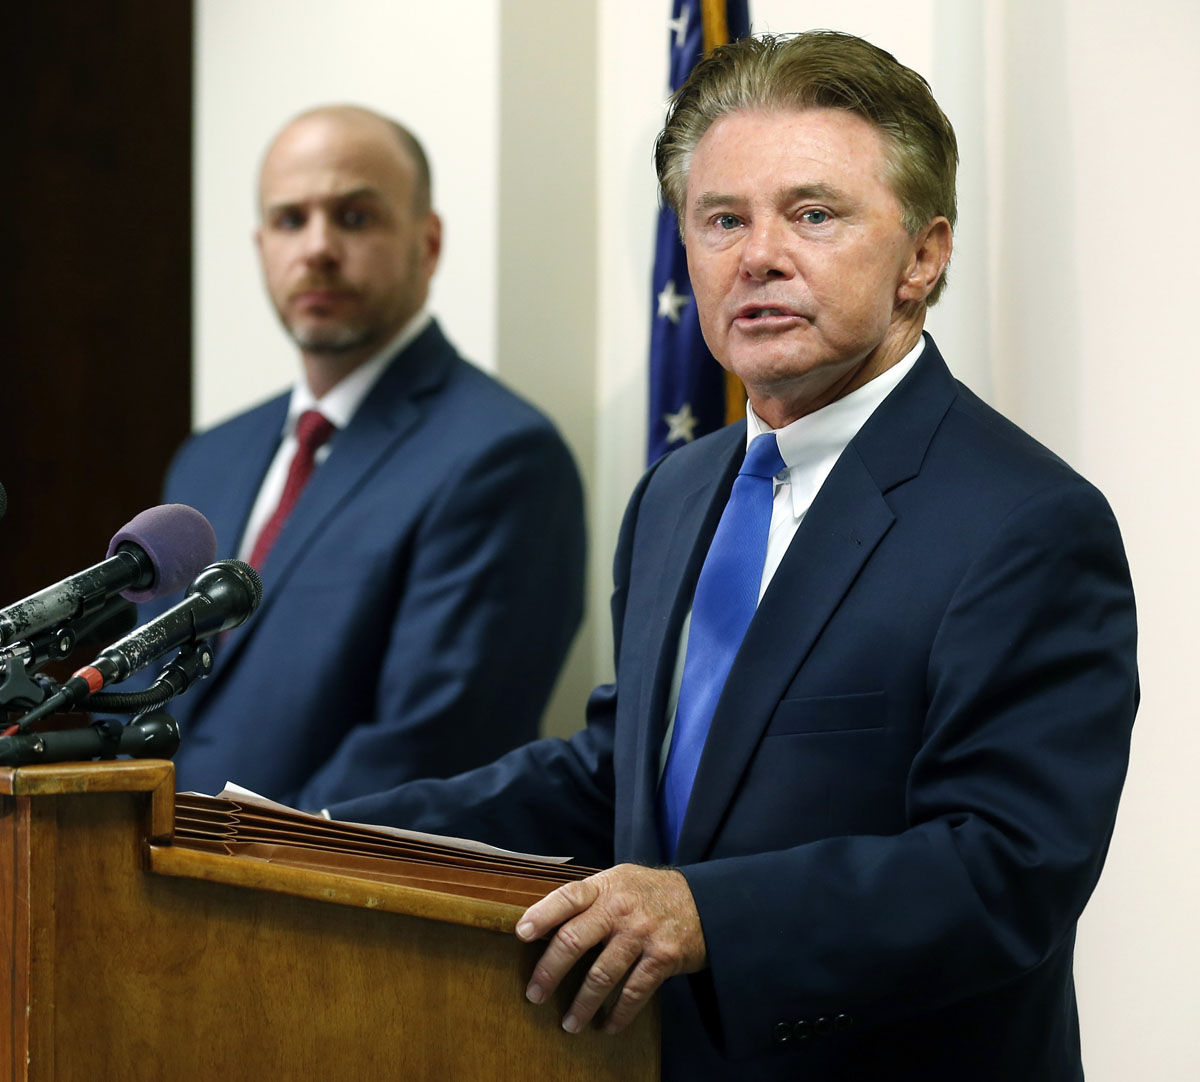 John McCarthy, Montgomery County Md., States Attorney, right, talks to the media along with Bedford County Prosecutor Wes Nance, left, after a plea by Lloyd Lee Welch Jr., for the killings of Sheila and Katherine Lyon in 1975, in Bedford County Circuit Court in Bedford, Va., Tuesday, Sept. 12, 2017. Welch plead guilty to two first degree murder charges and was sentenced to two consecutive 48-year terms. (AP Photo/Steve Helber)